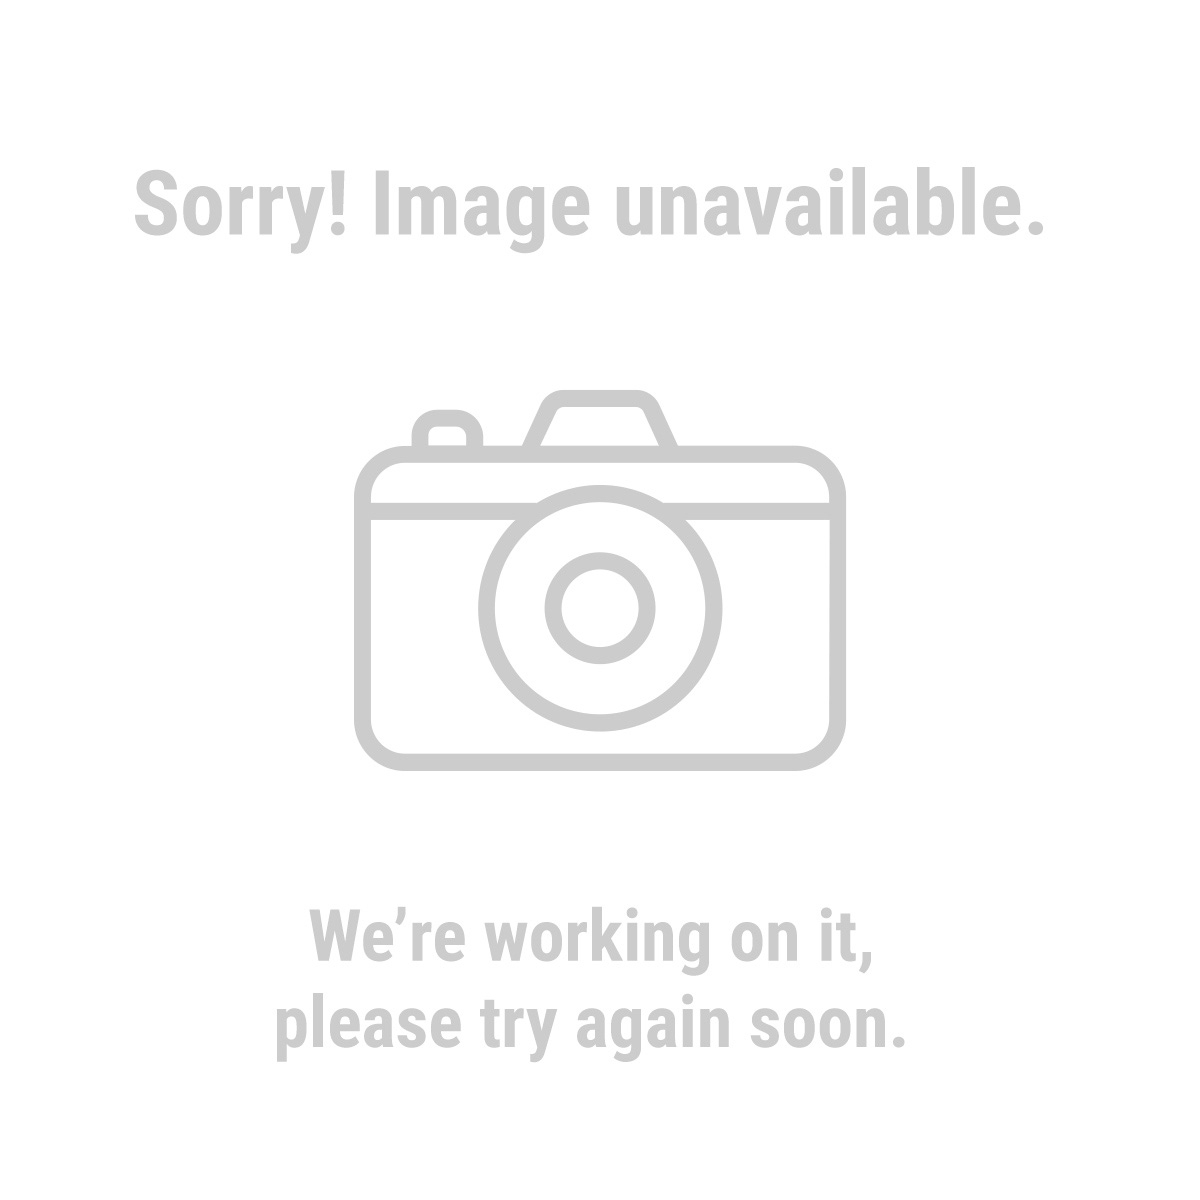 Arctic Freeze 97275 18 Oz. Arctic Freeze Refrigerant with Dispenser and Gauge